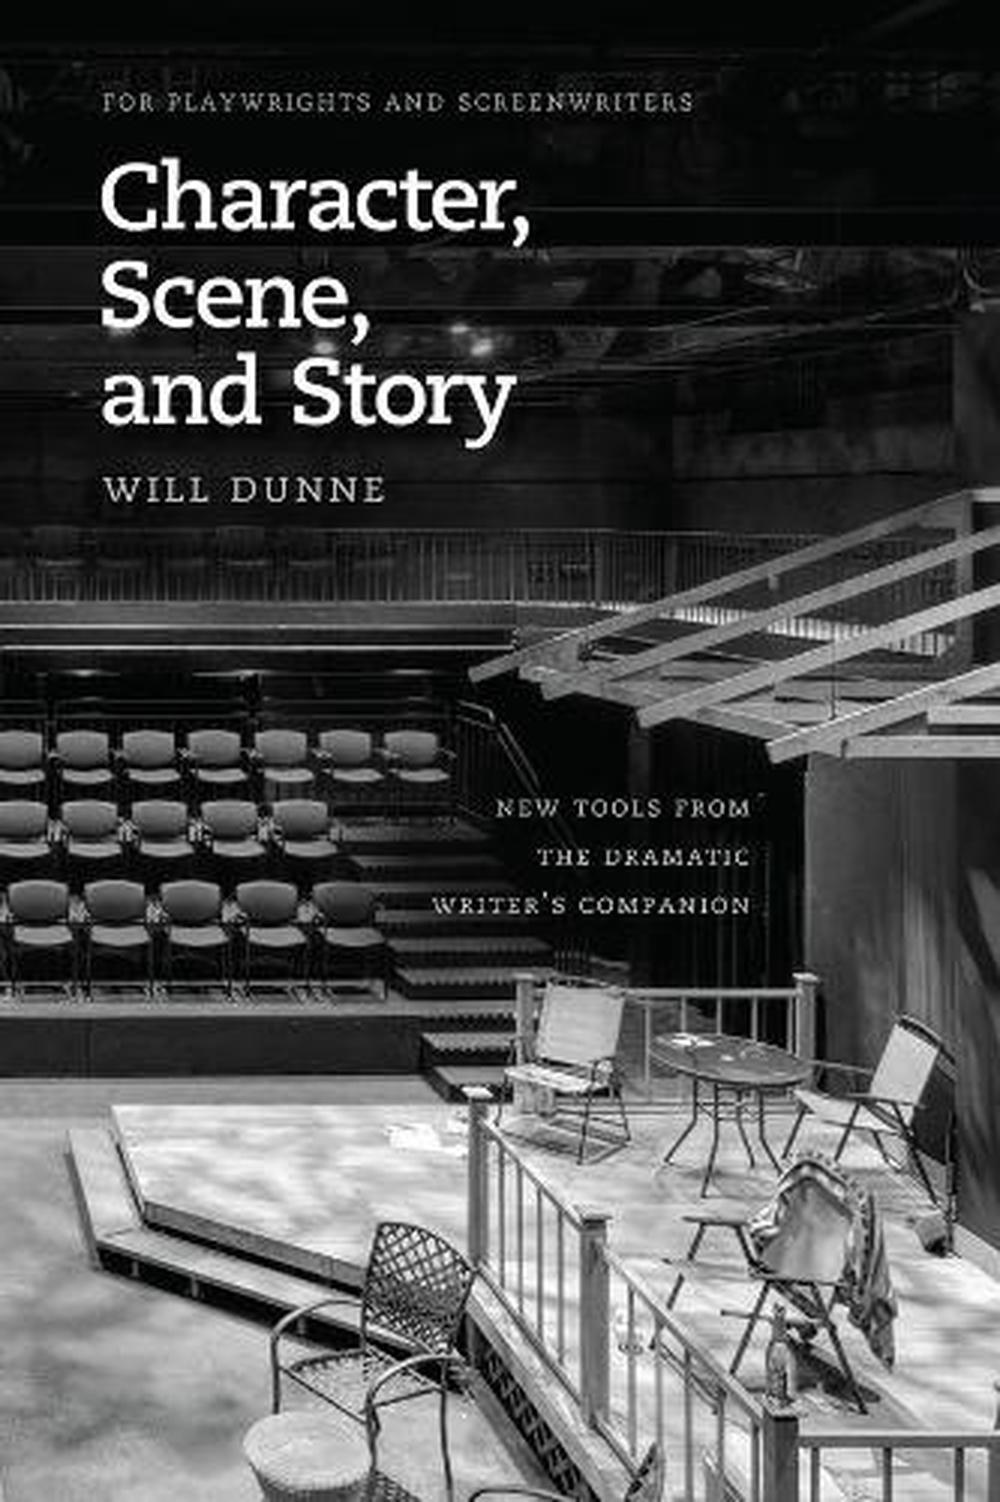 Character, Scene, and Story: New Tools from the Dramatic Writer's Companion by W